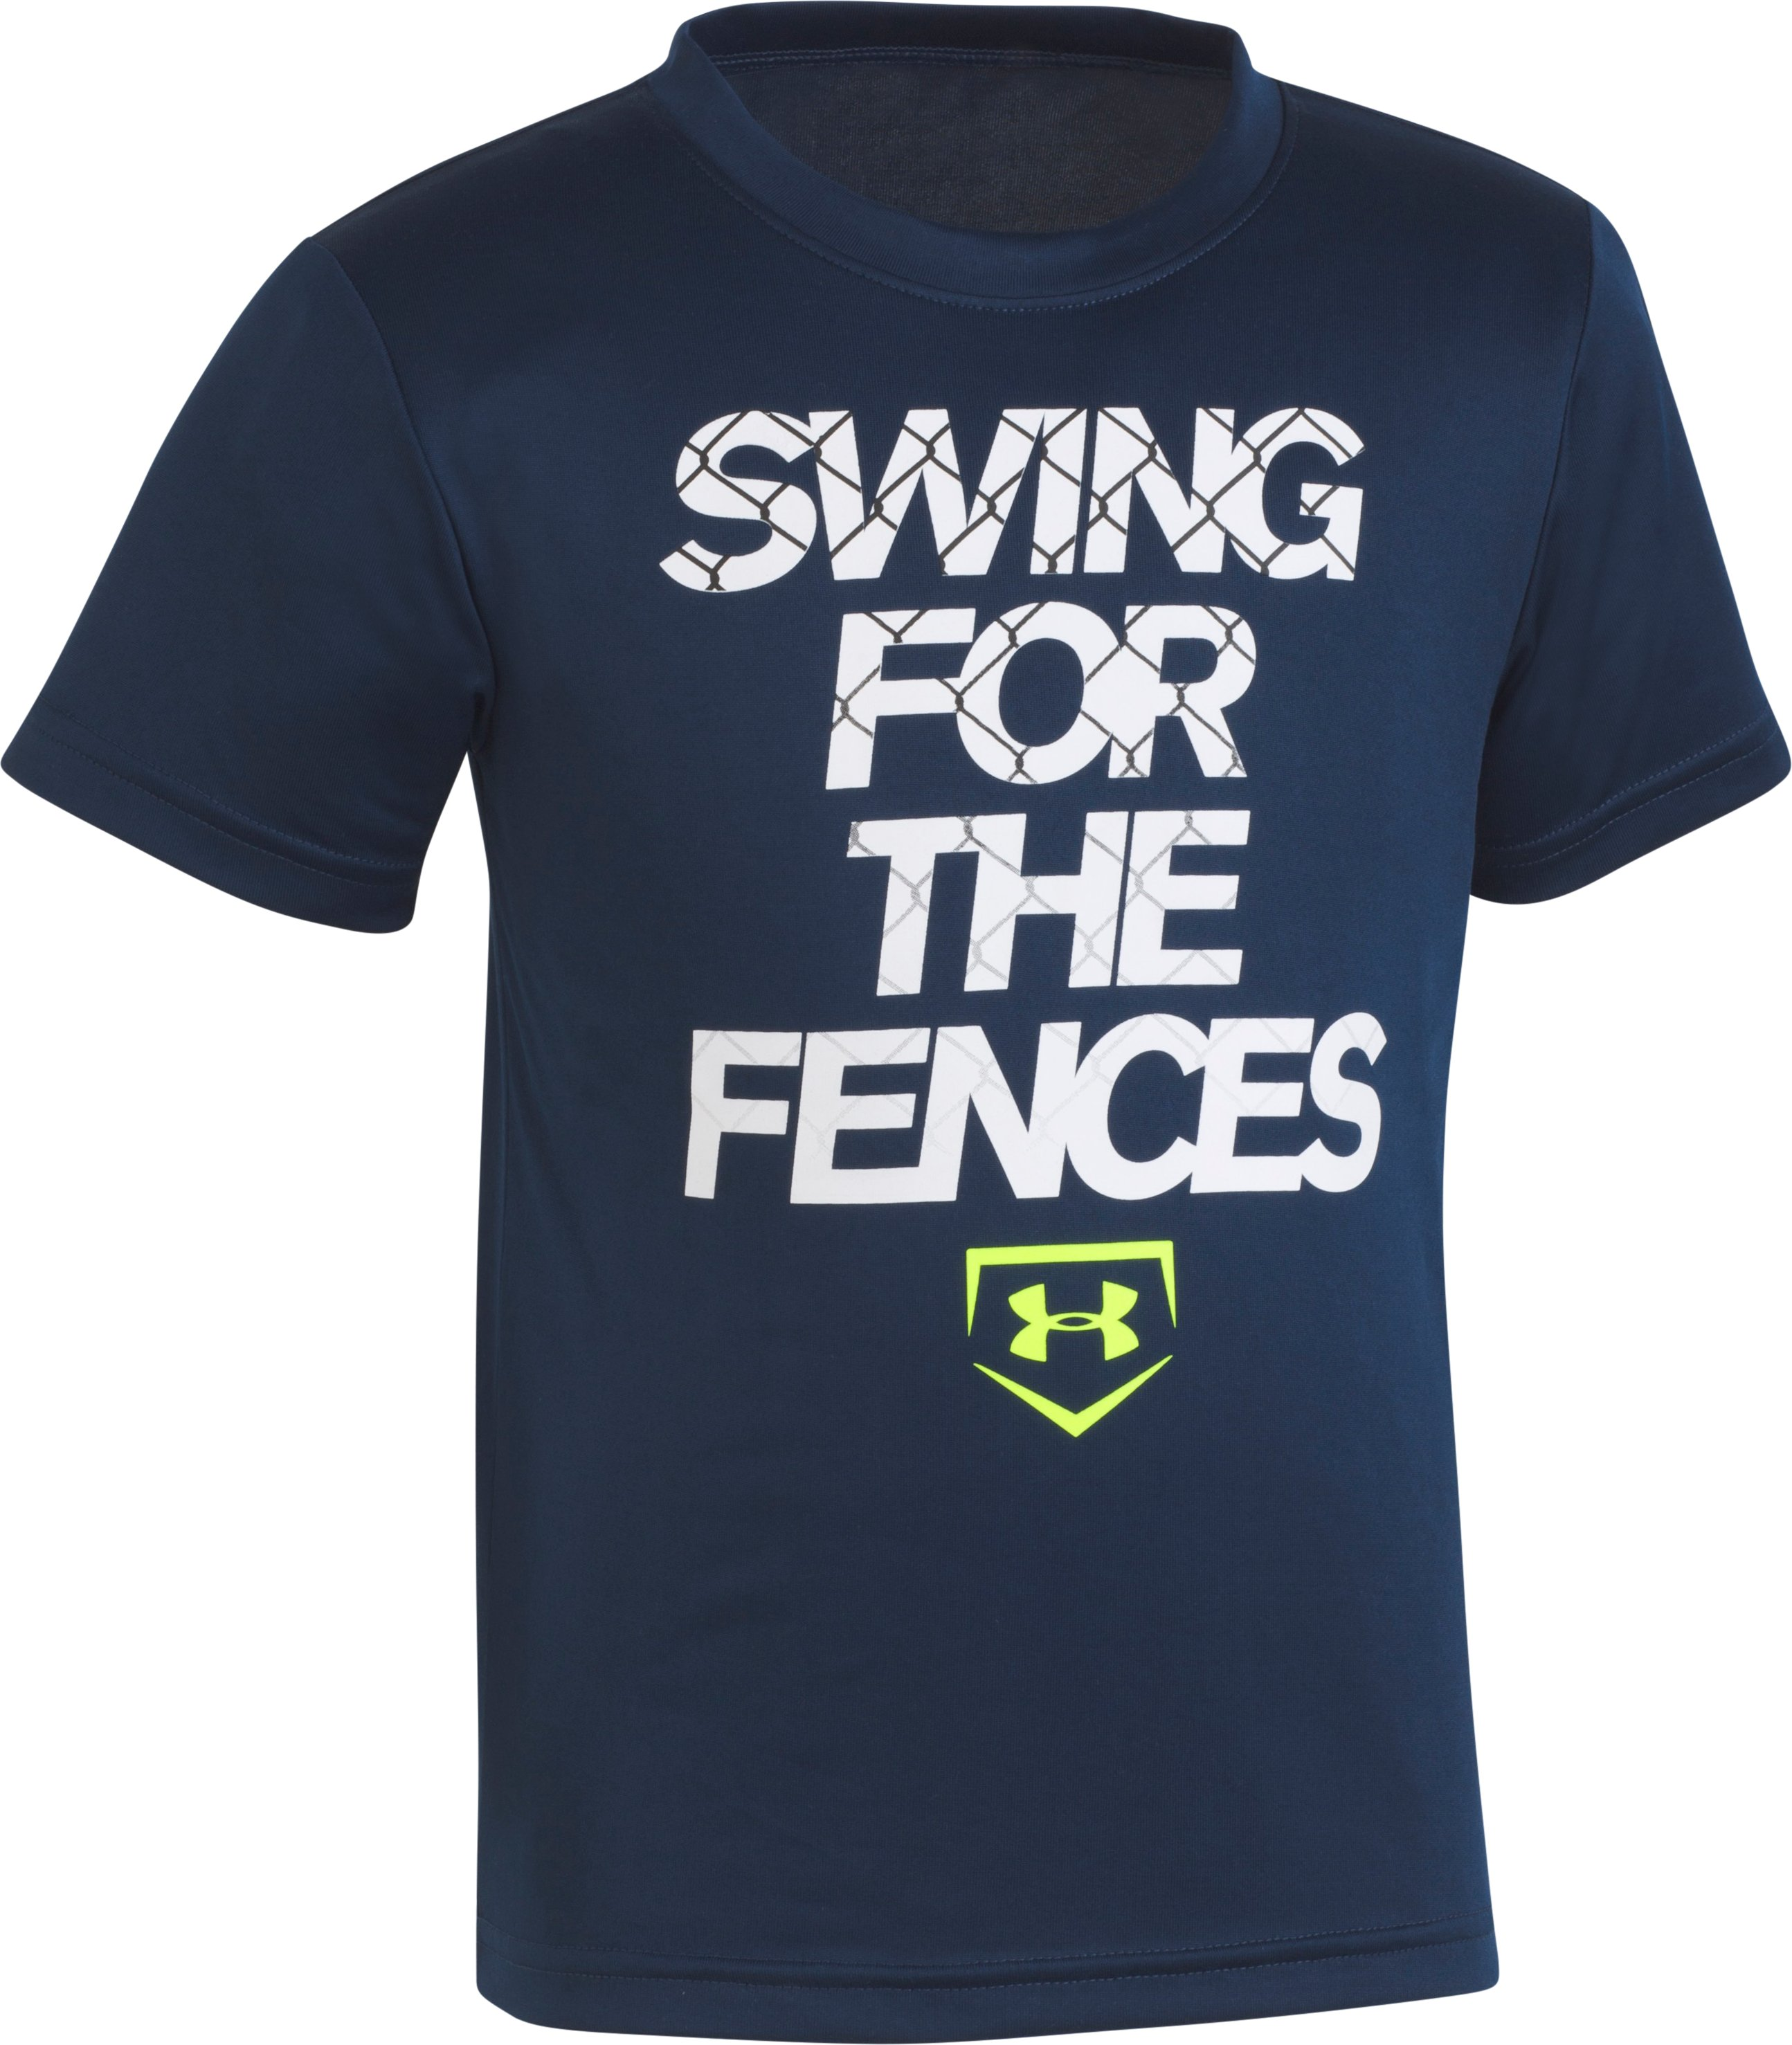 Boys' Pre-School UA Swing For The Fences T-Shirt , Academy, zoomed